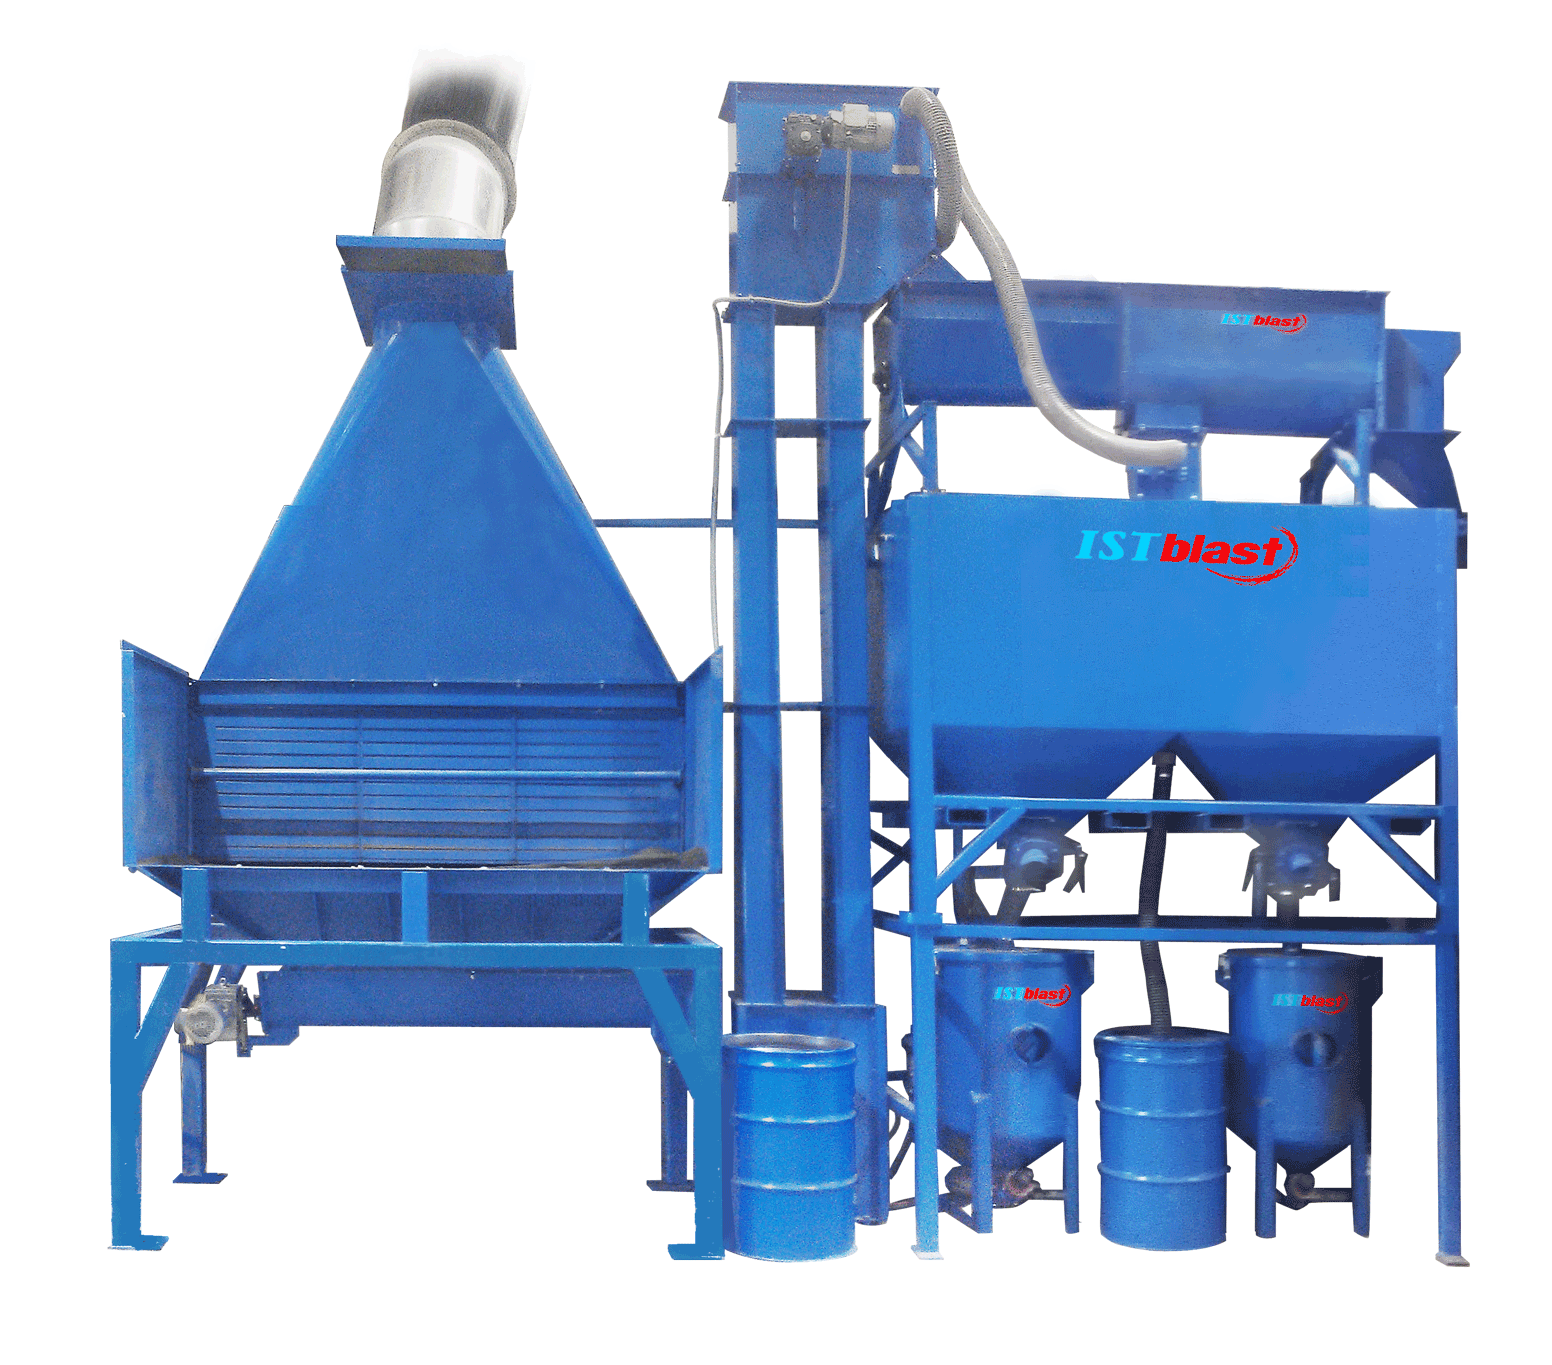 Mechanical Loading - Mechanical Abrasive Recovery System for Sandblast Booth - ISTblast